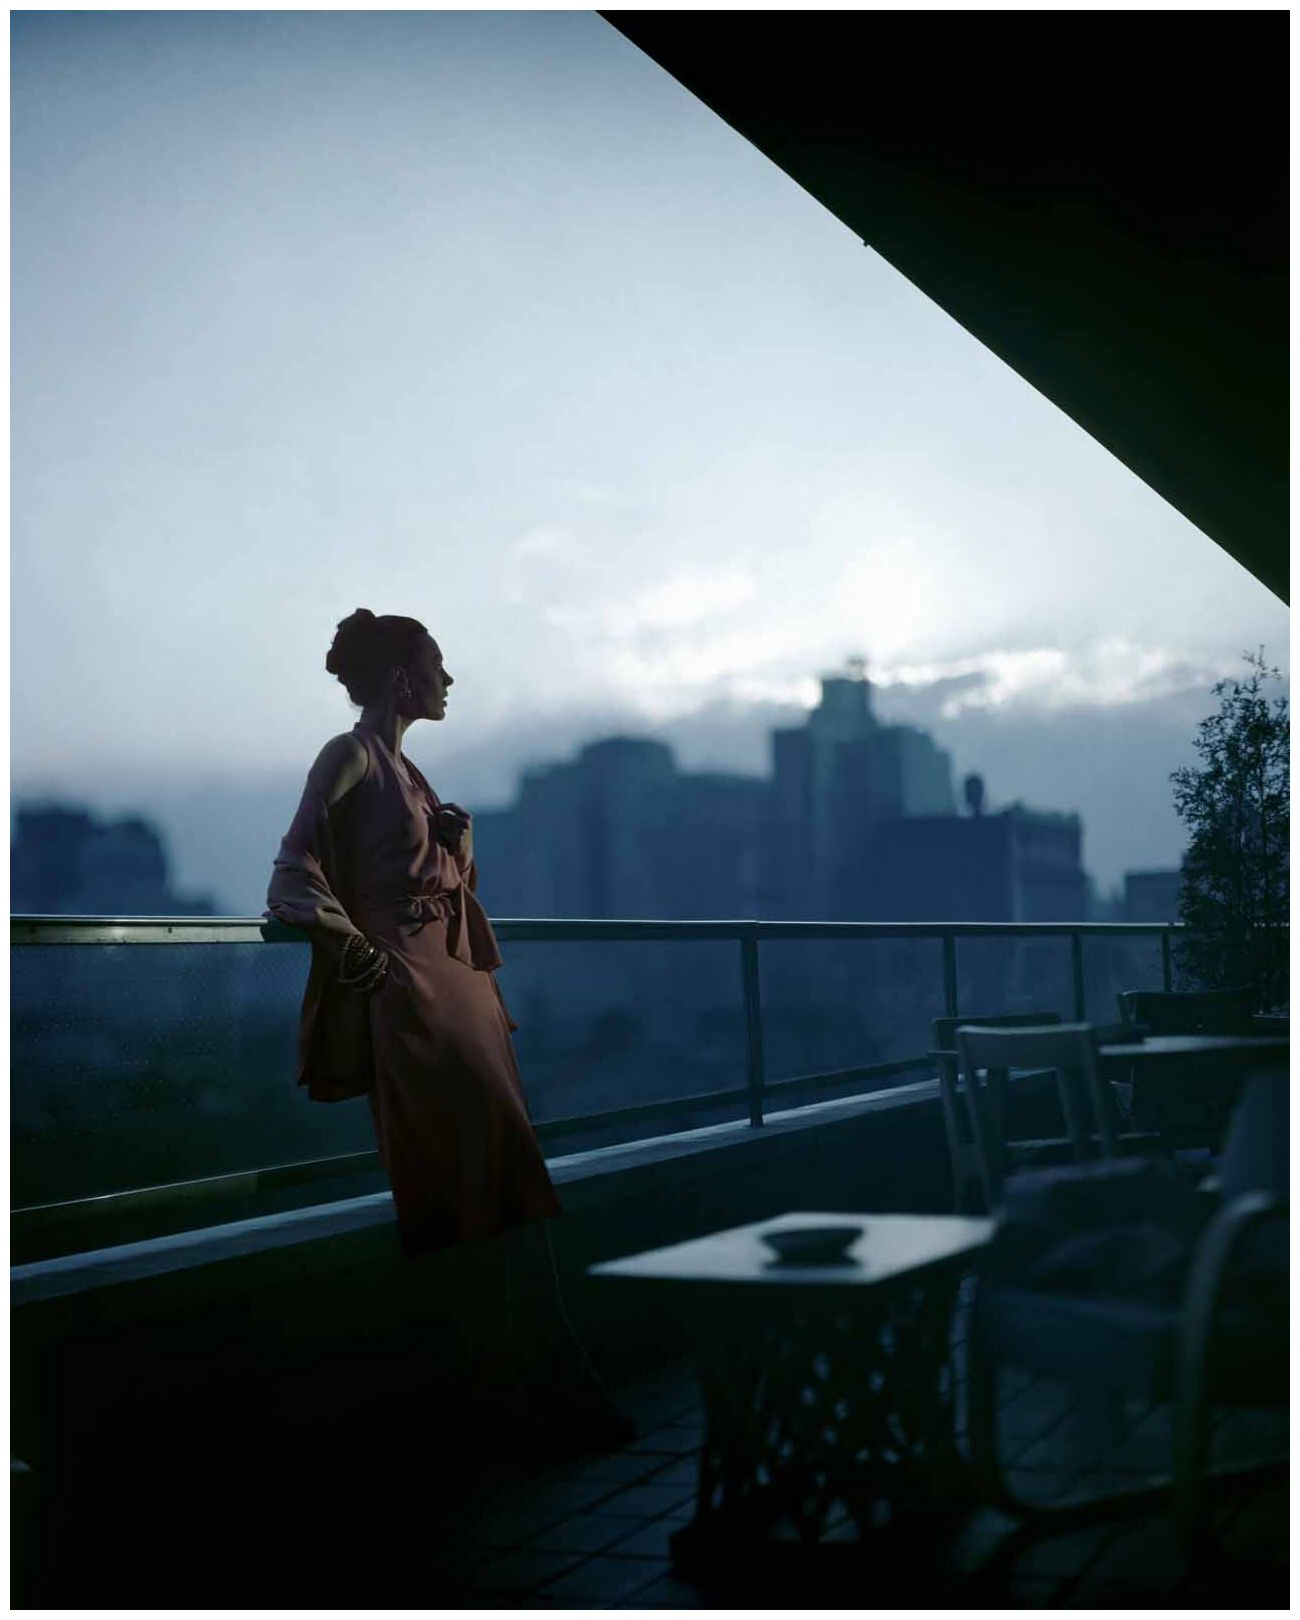 new-york-state-of-mind-dress-by-clarepotter-on-the-roof-of-new-yorks-moma-circa-1945-photo-joffe-constantin.jpg 1300×1620 pikseli